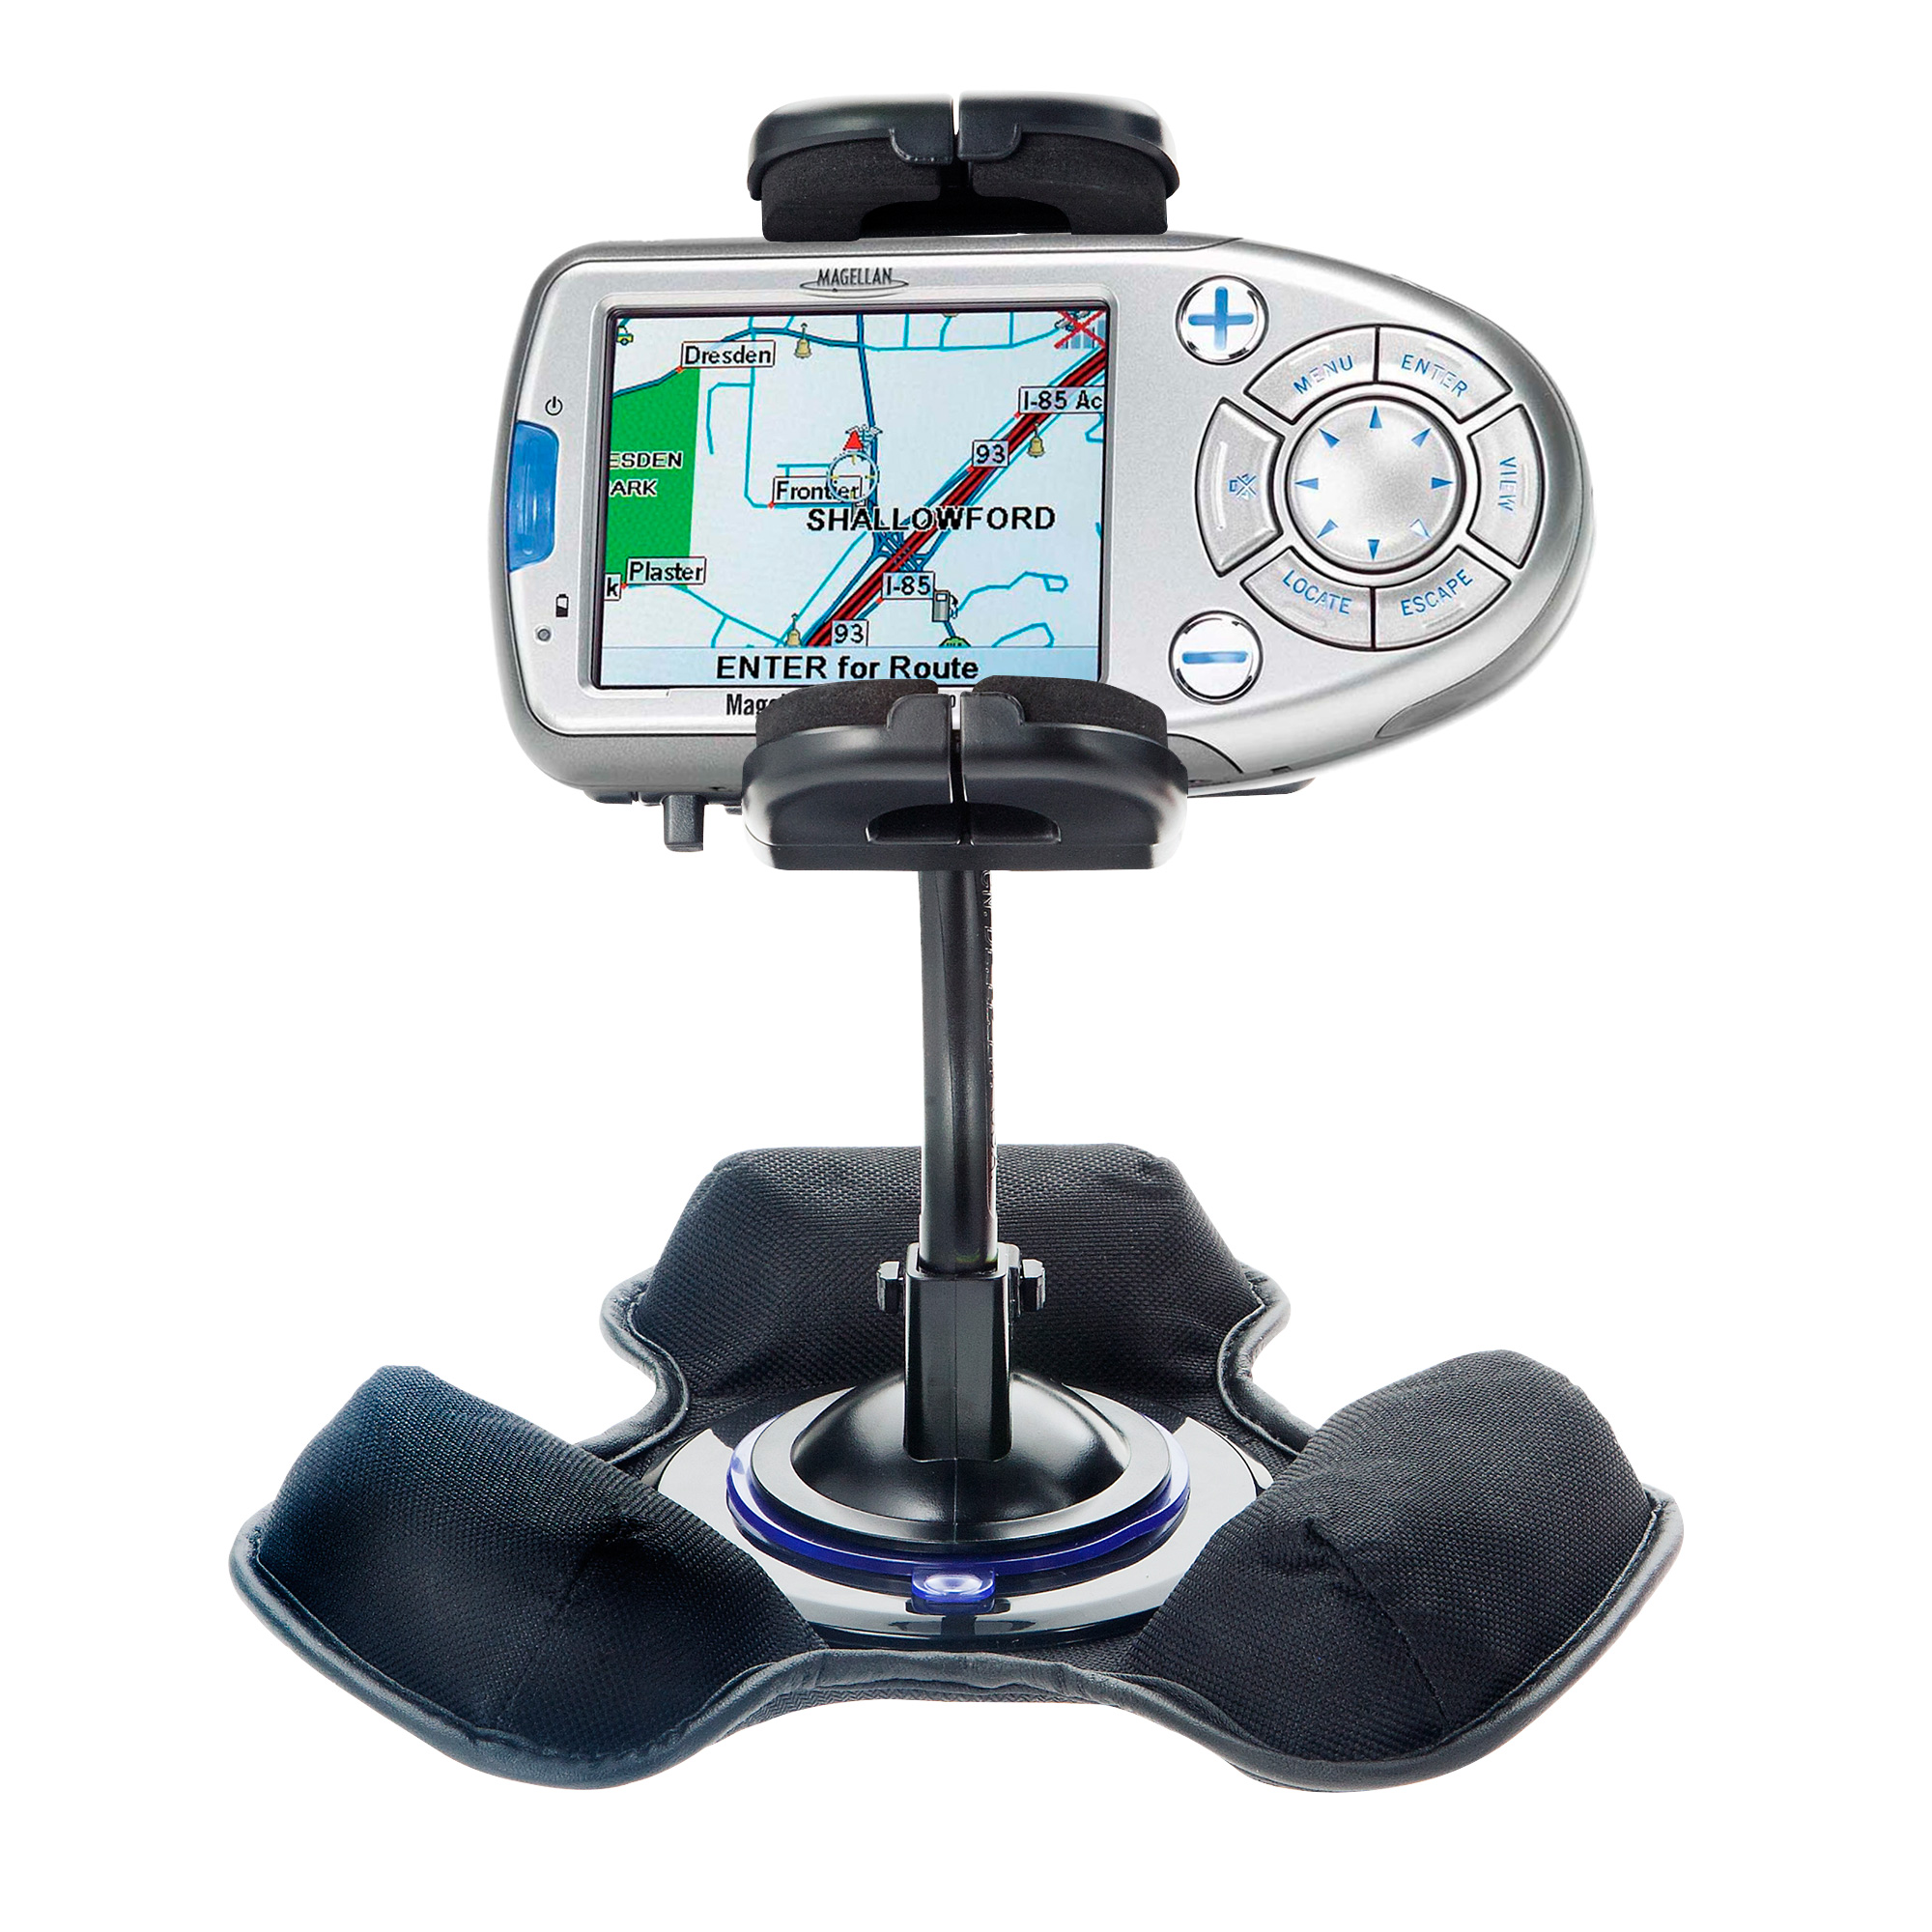 Car / Truck Vehicle Holder Mounting System for Magellan Roadmate 800 Includes Unique Flexible Windshield Suction and Universal Dashboard Mount Options